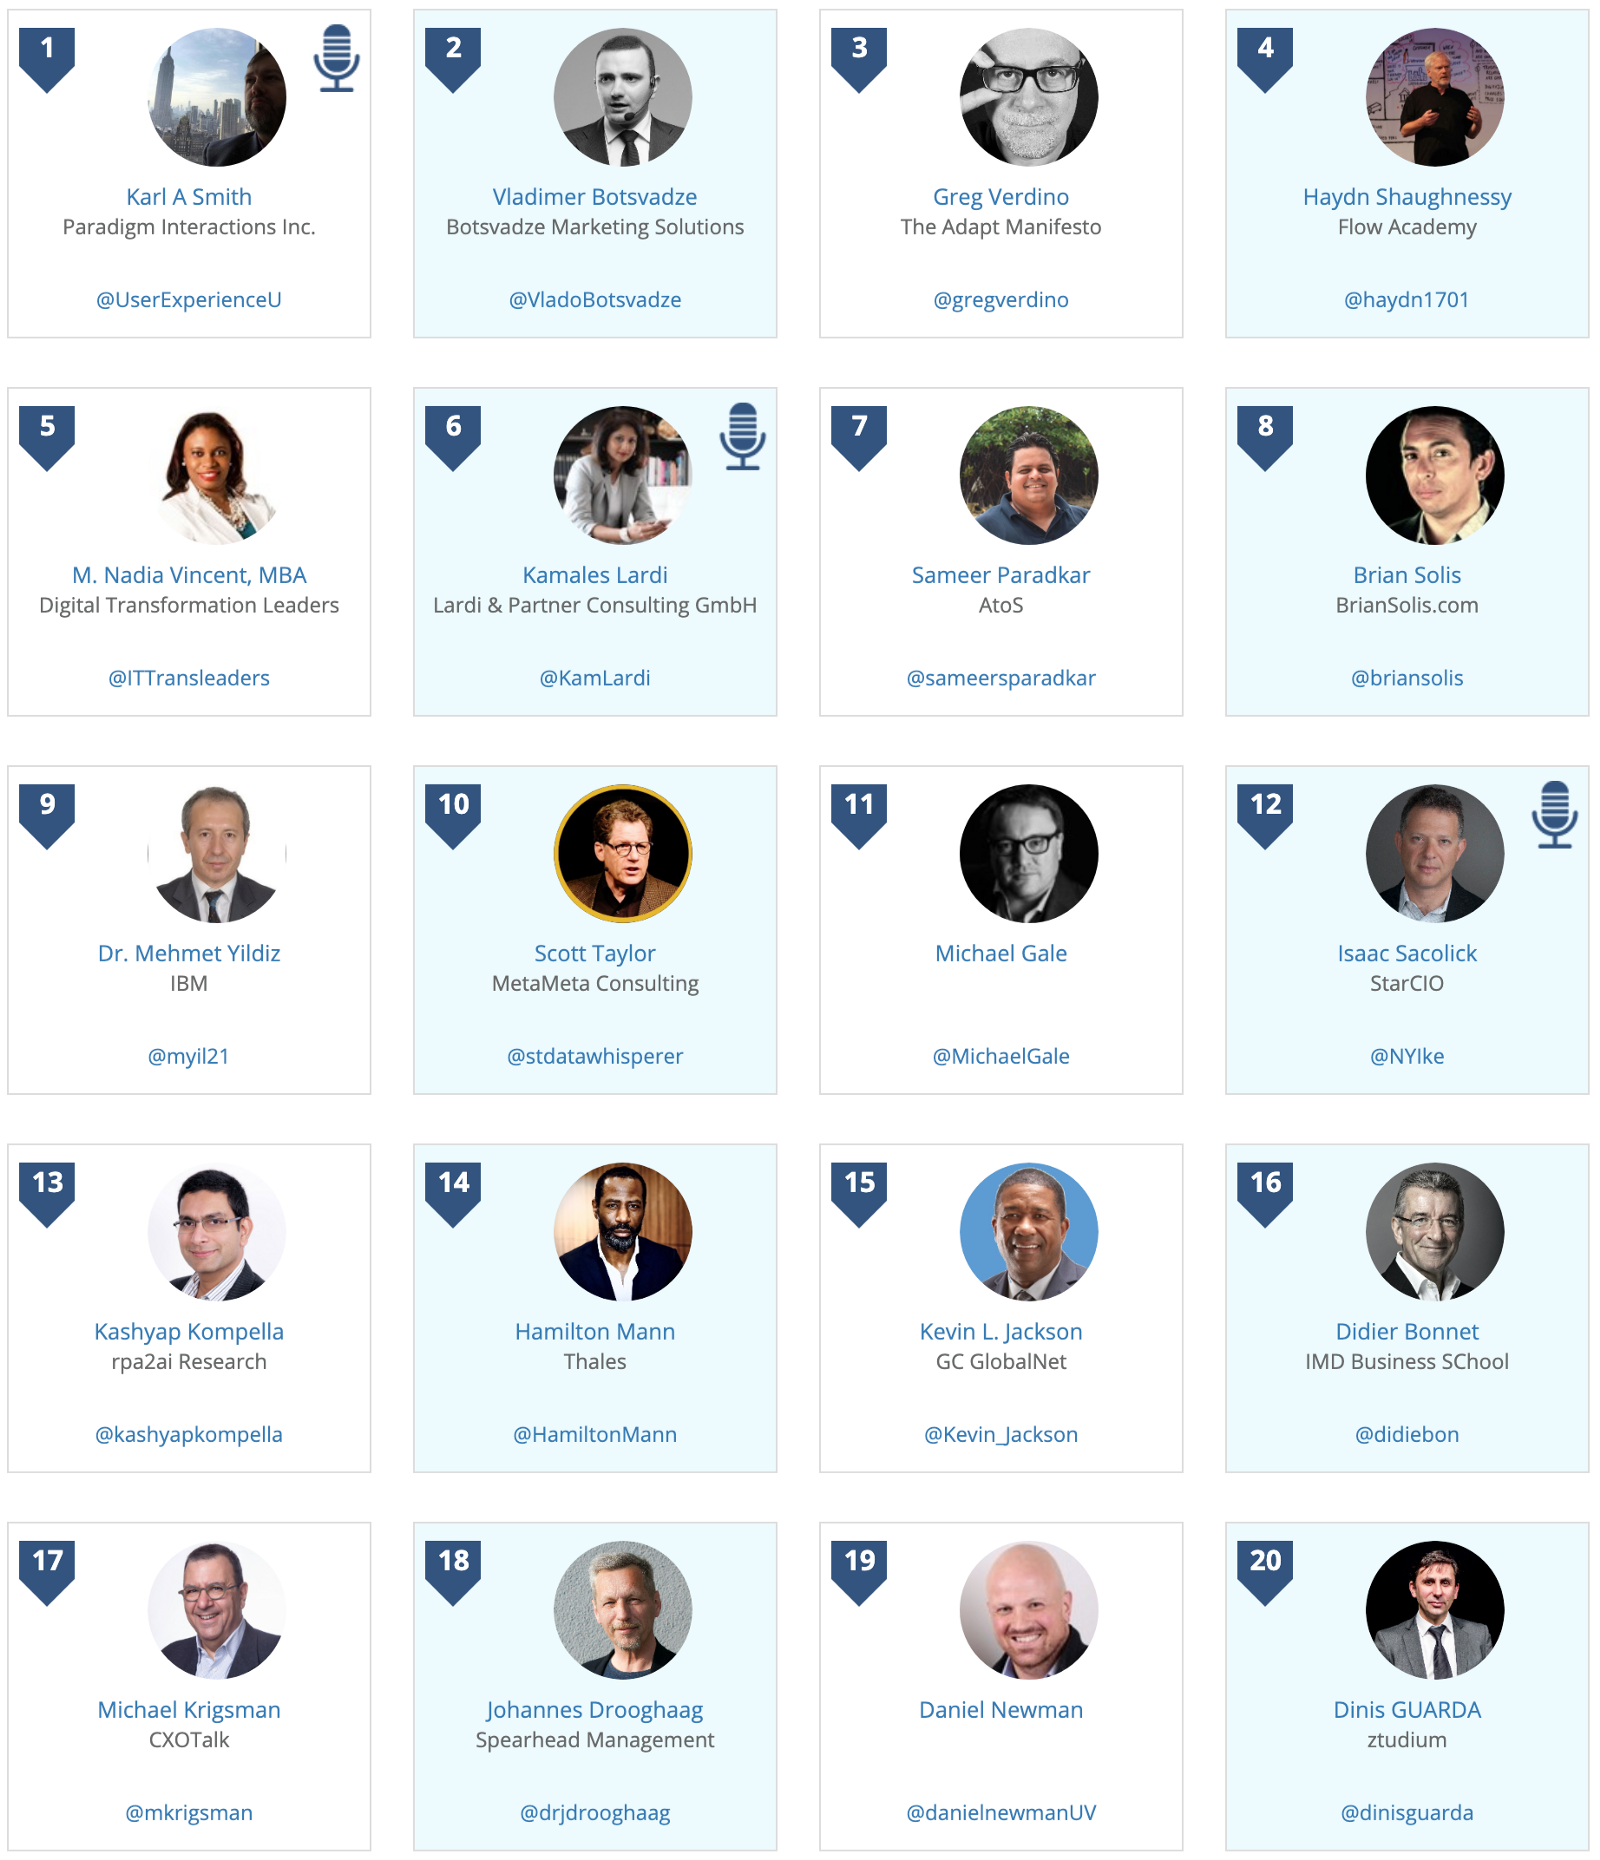 Karl Smith ranked 1st in Digital Transformation Global Thought Leadership and Influencer 10/25/20